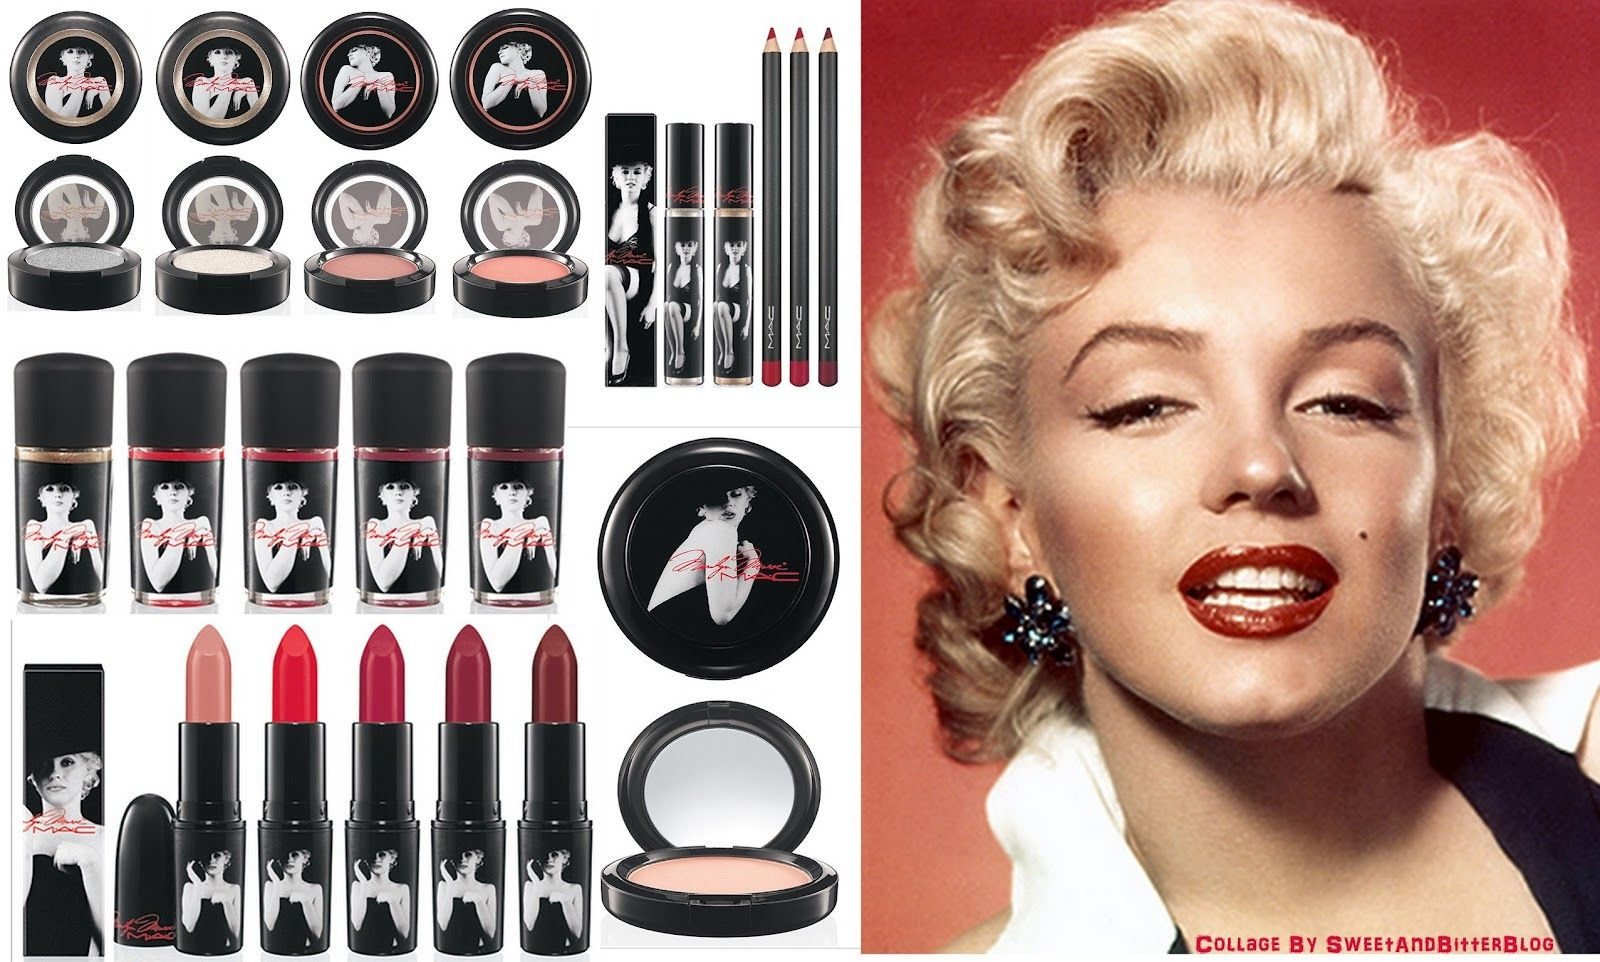 MARILYN MONROE - M.A.C MAKEUP COLLECTION